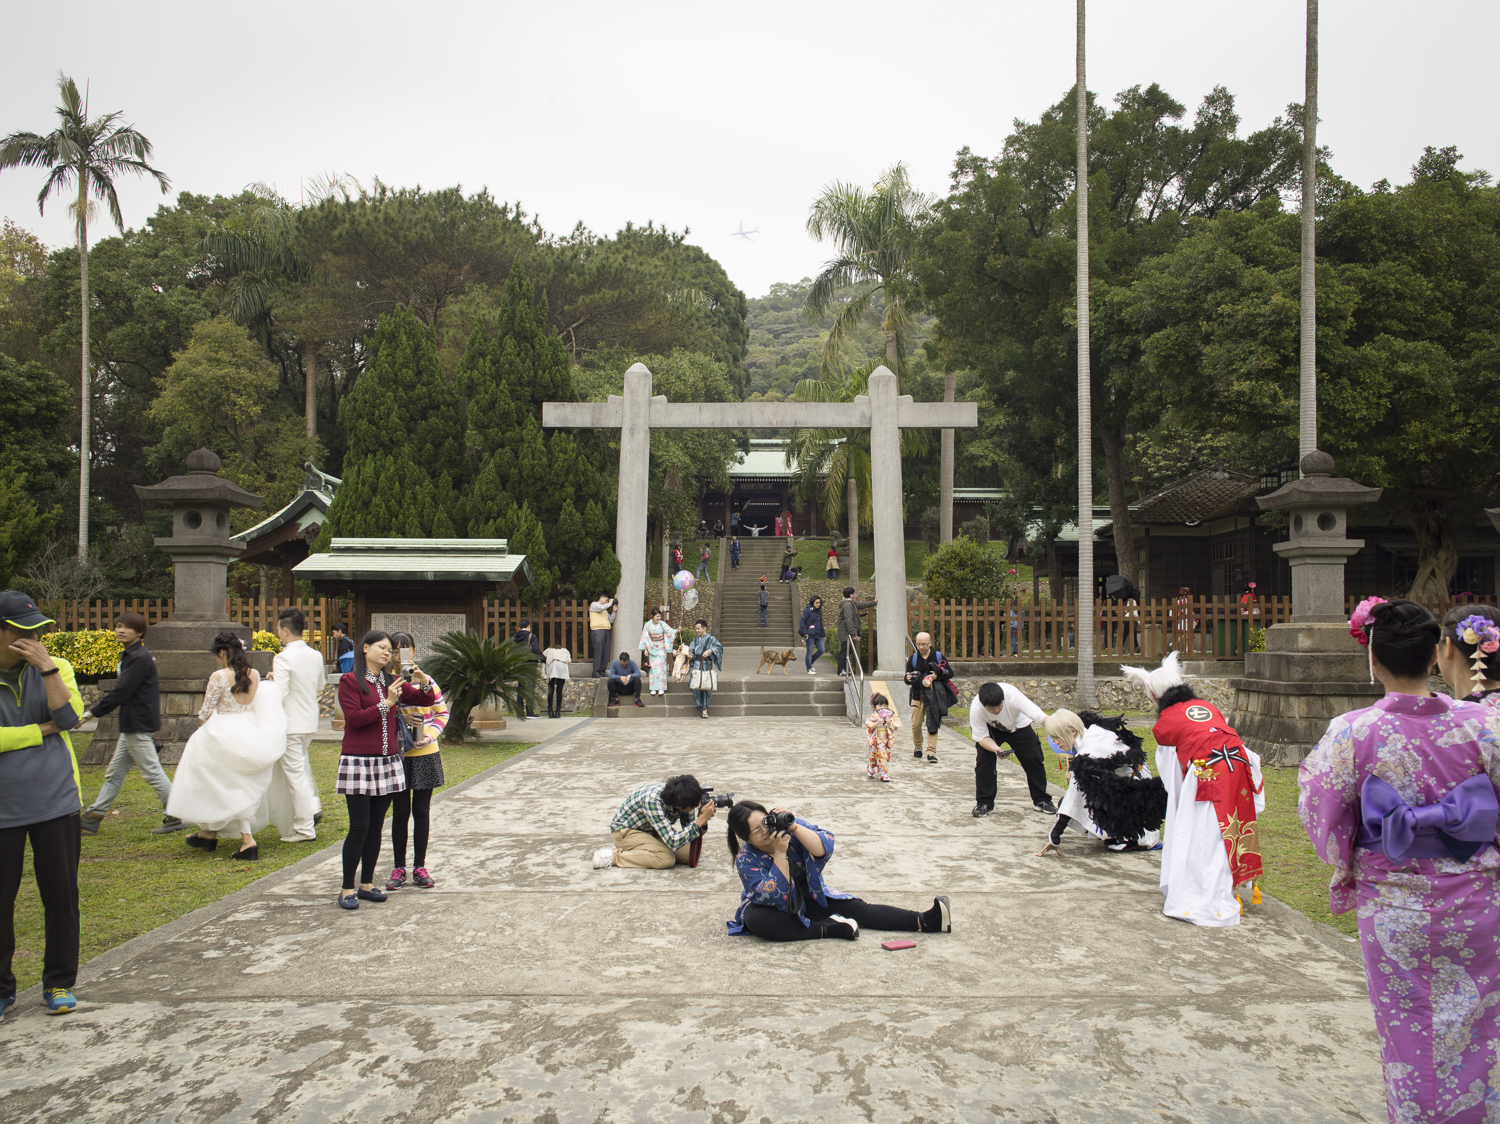 Taiwanese Martyrs Shrine - Taoyuan 桃園忠烈祠.jpg